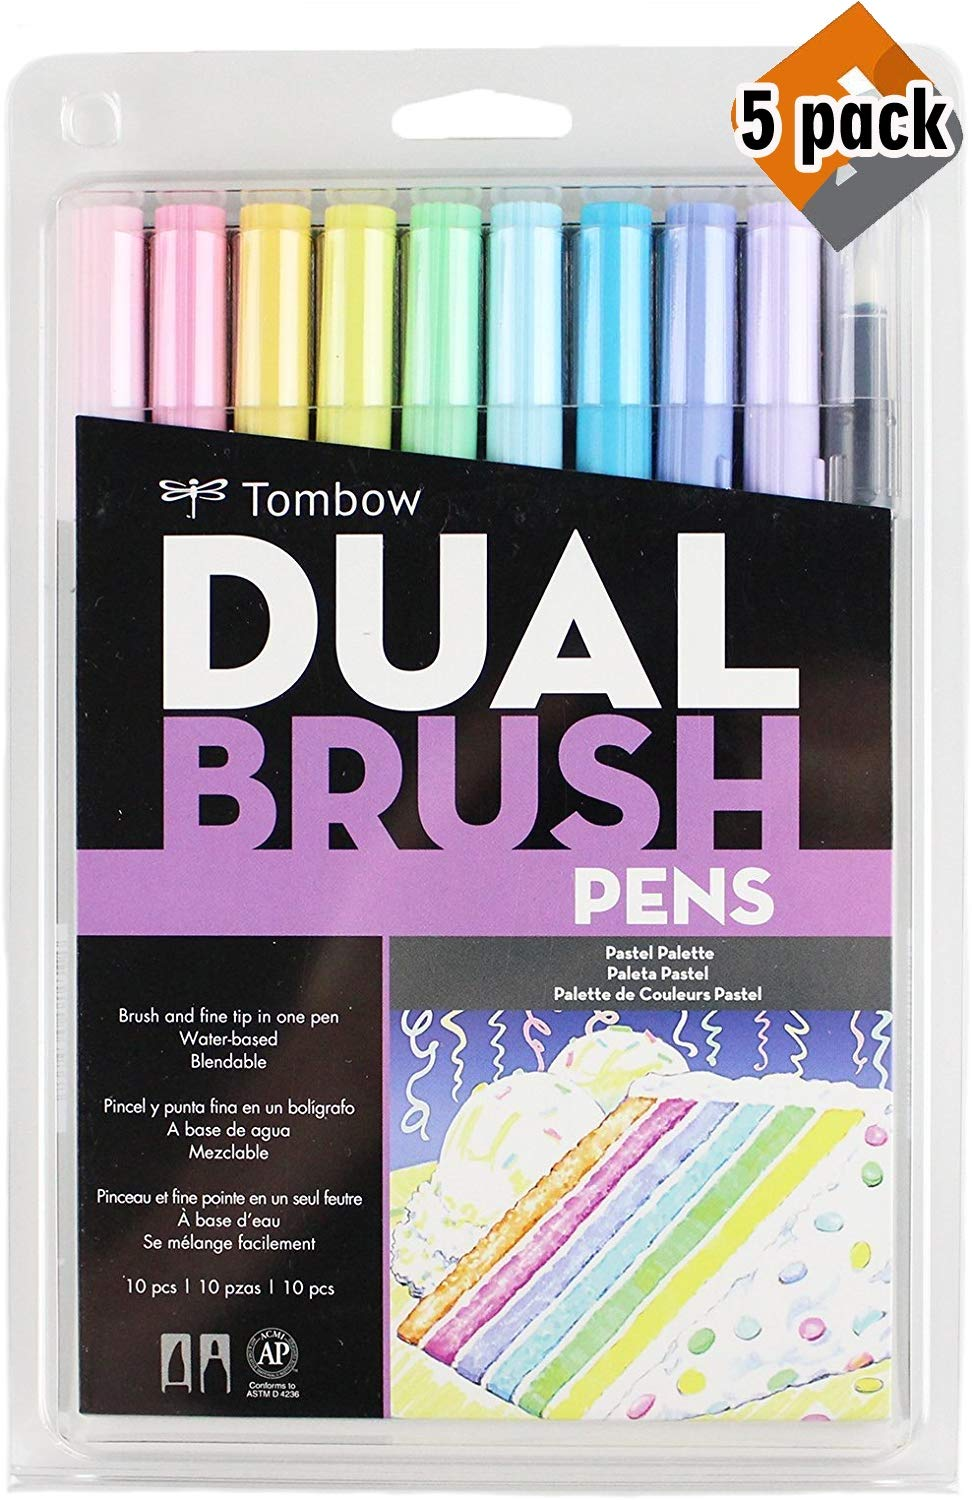 Tombow 56187 Dual Brush Pen Art Markers, Pastel, 10-Pack. Blendable, Brush and Fine Tip Markers - 5 Pack by Tombow